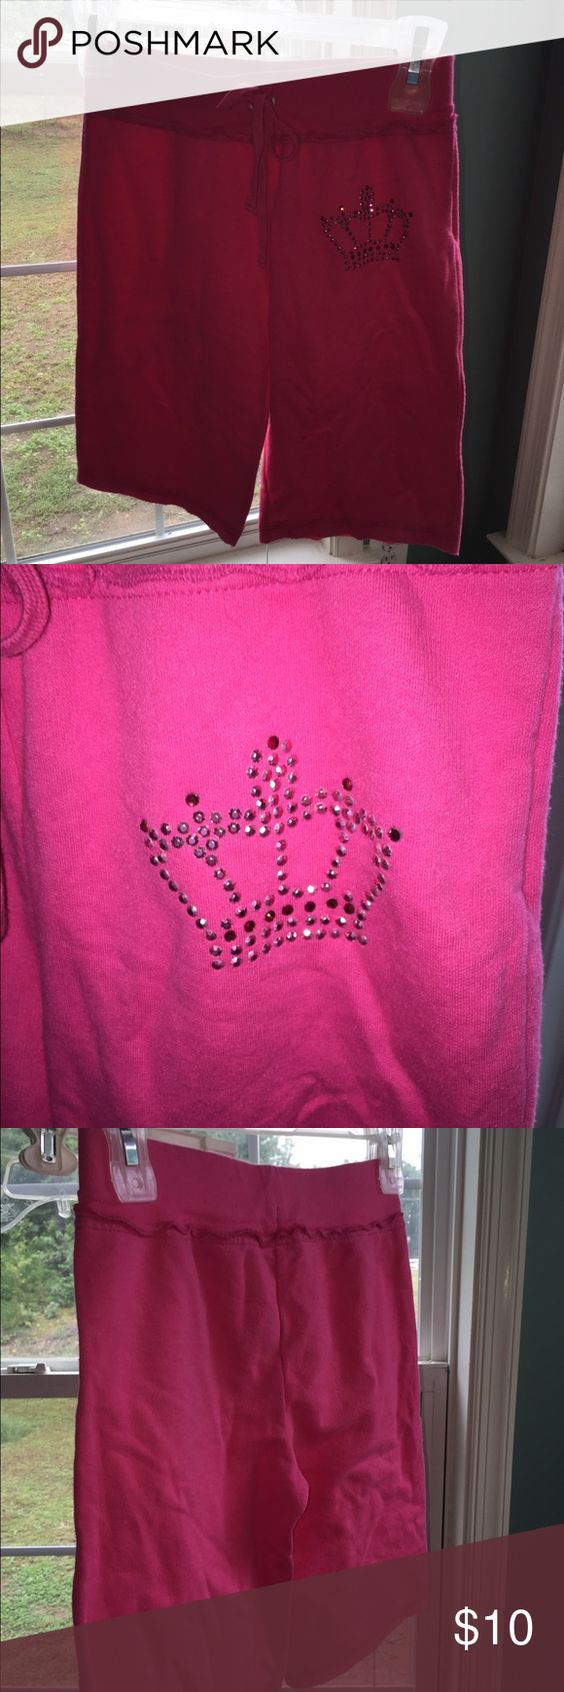 Arizona Pink Girls Shorts size 10 Comfy girls pink shorts in size 10 (Arizona brand) with a decorative sparkly crown on one side. Like new condition worn only a couple times is that Arizona Jean Company Bottoms Shorts